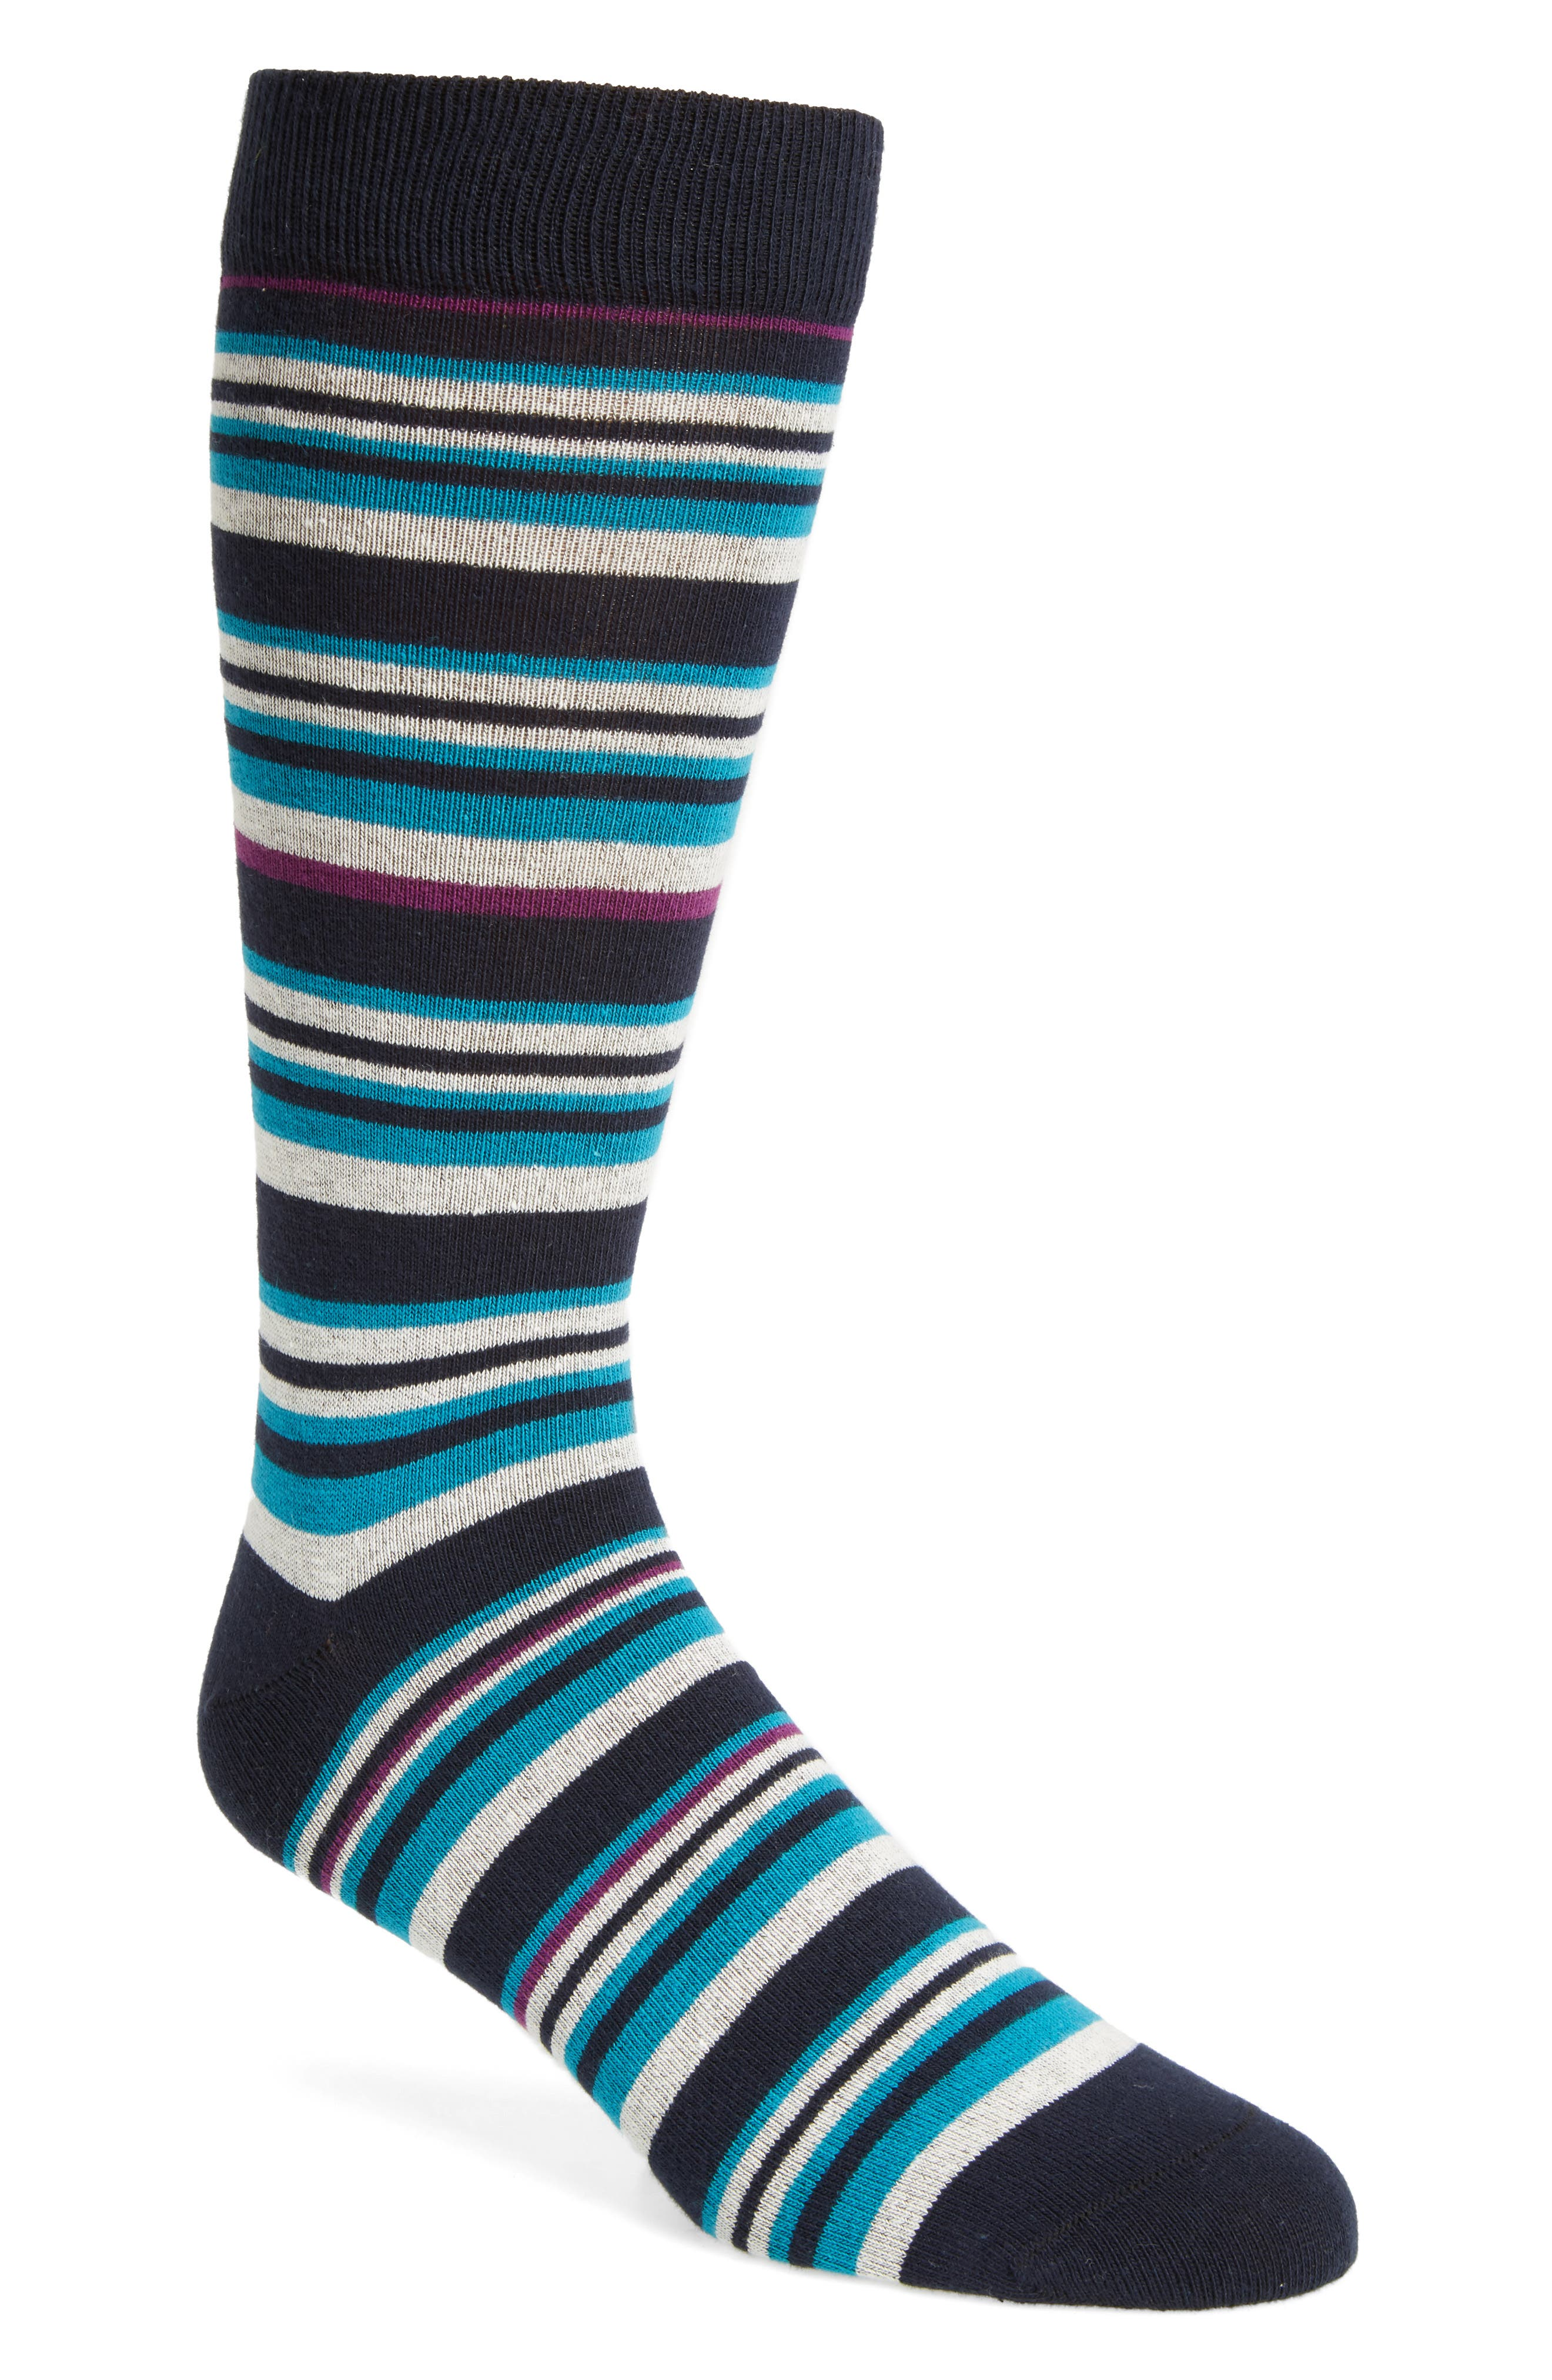 TED BAKER LONDON Thin Stripe Crew Socks